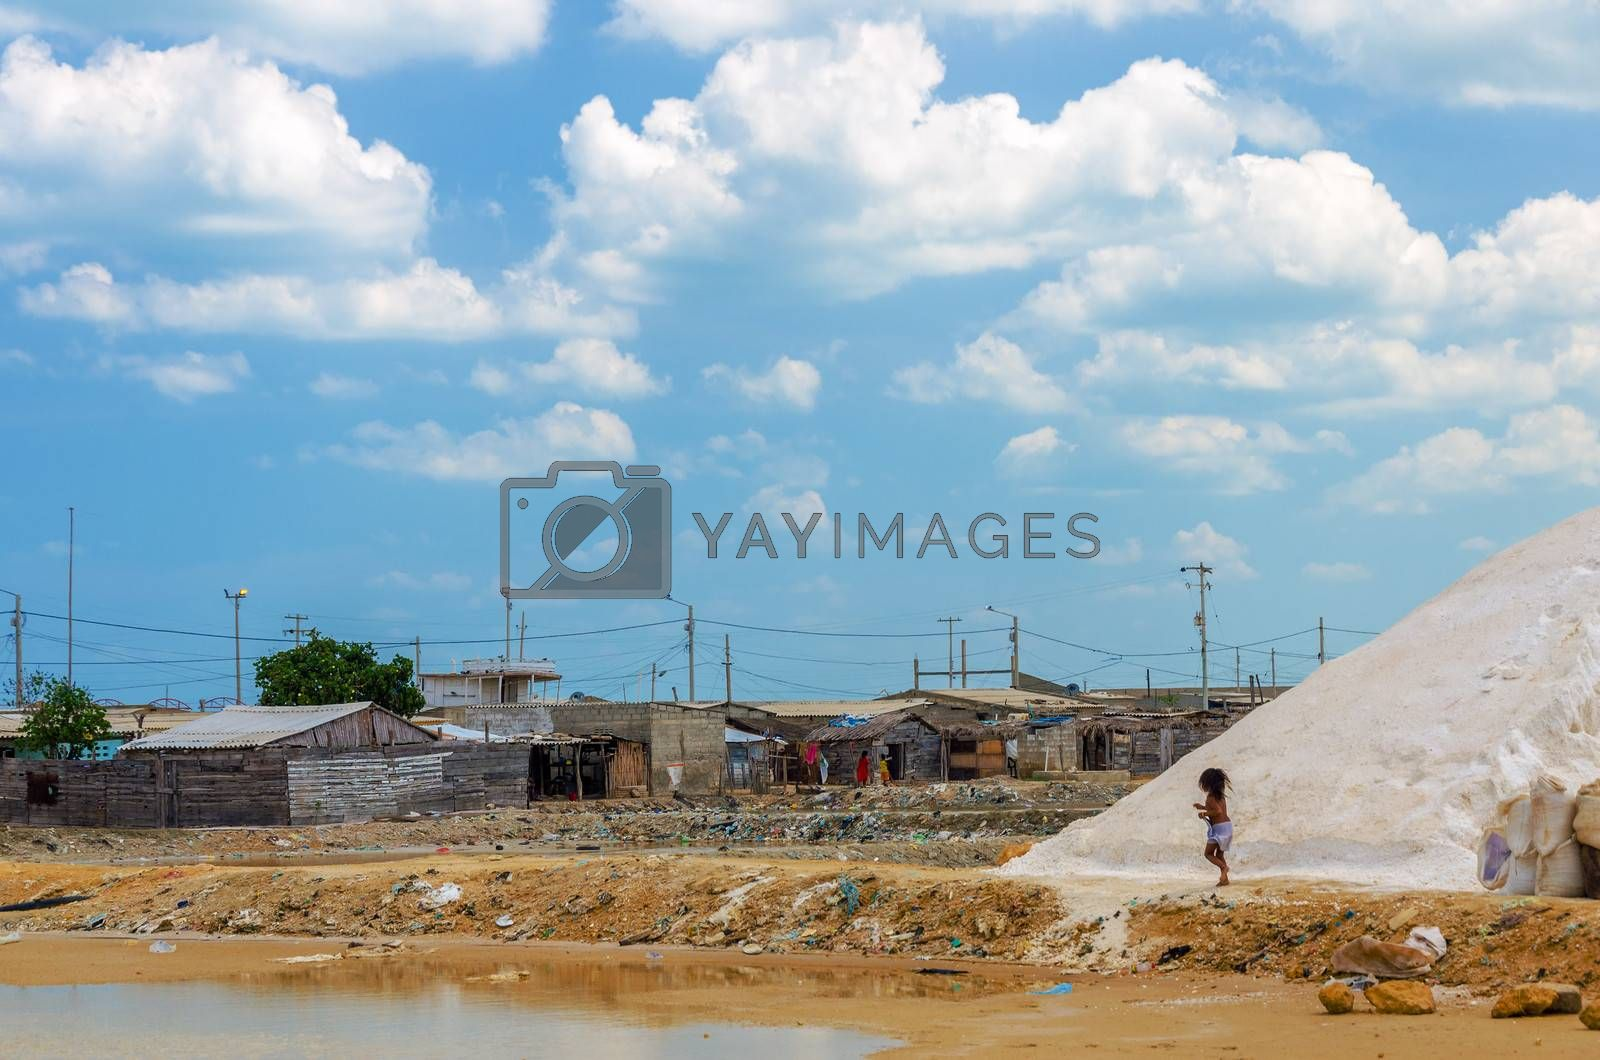 Slum in Colombia where the locals rely on small scale salt production